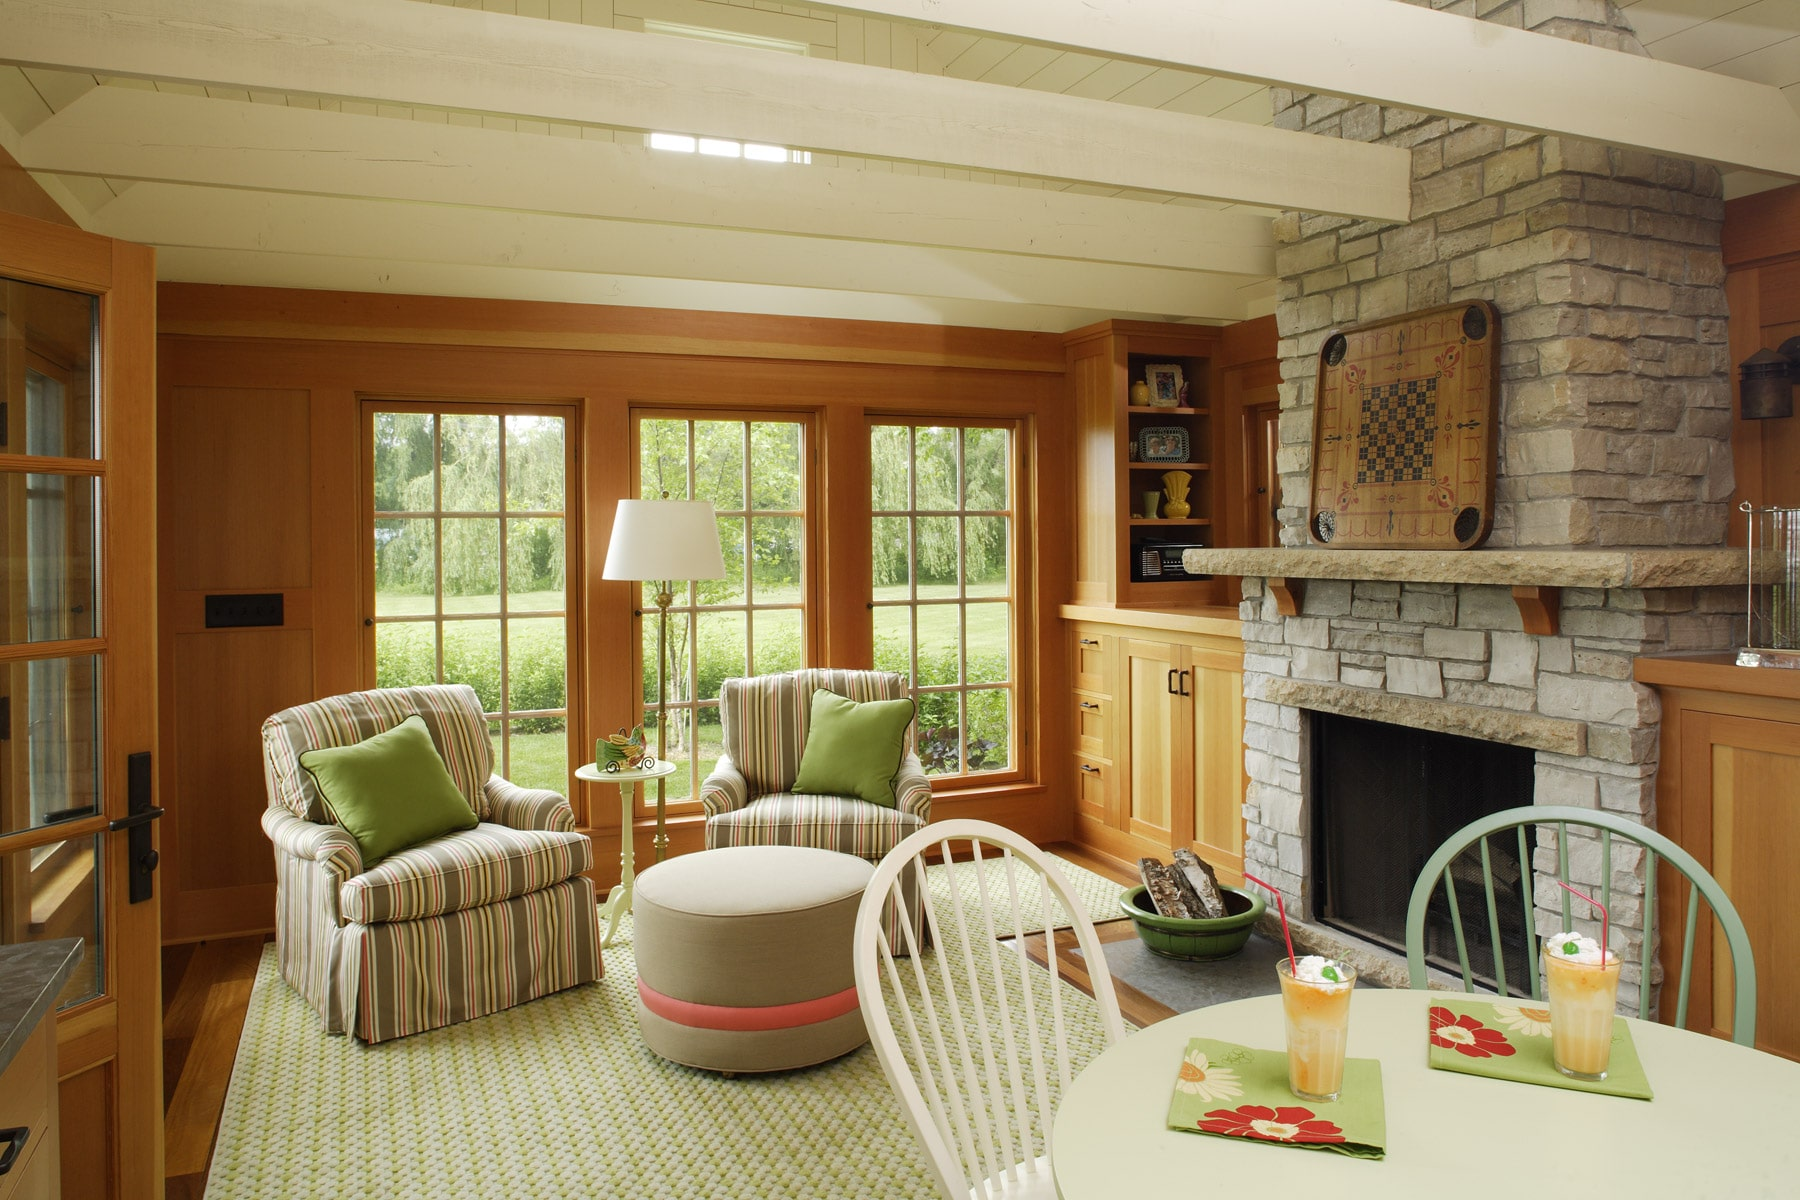 Boat-House-Interior-Living-Room-Minneapolis-interior-55391.jpeg